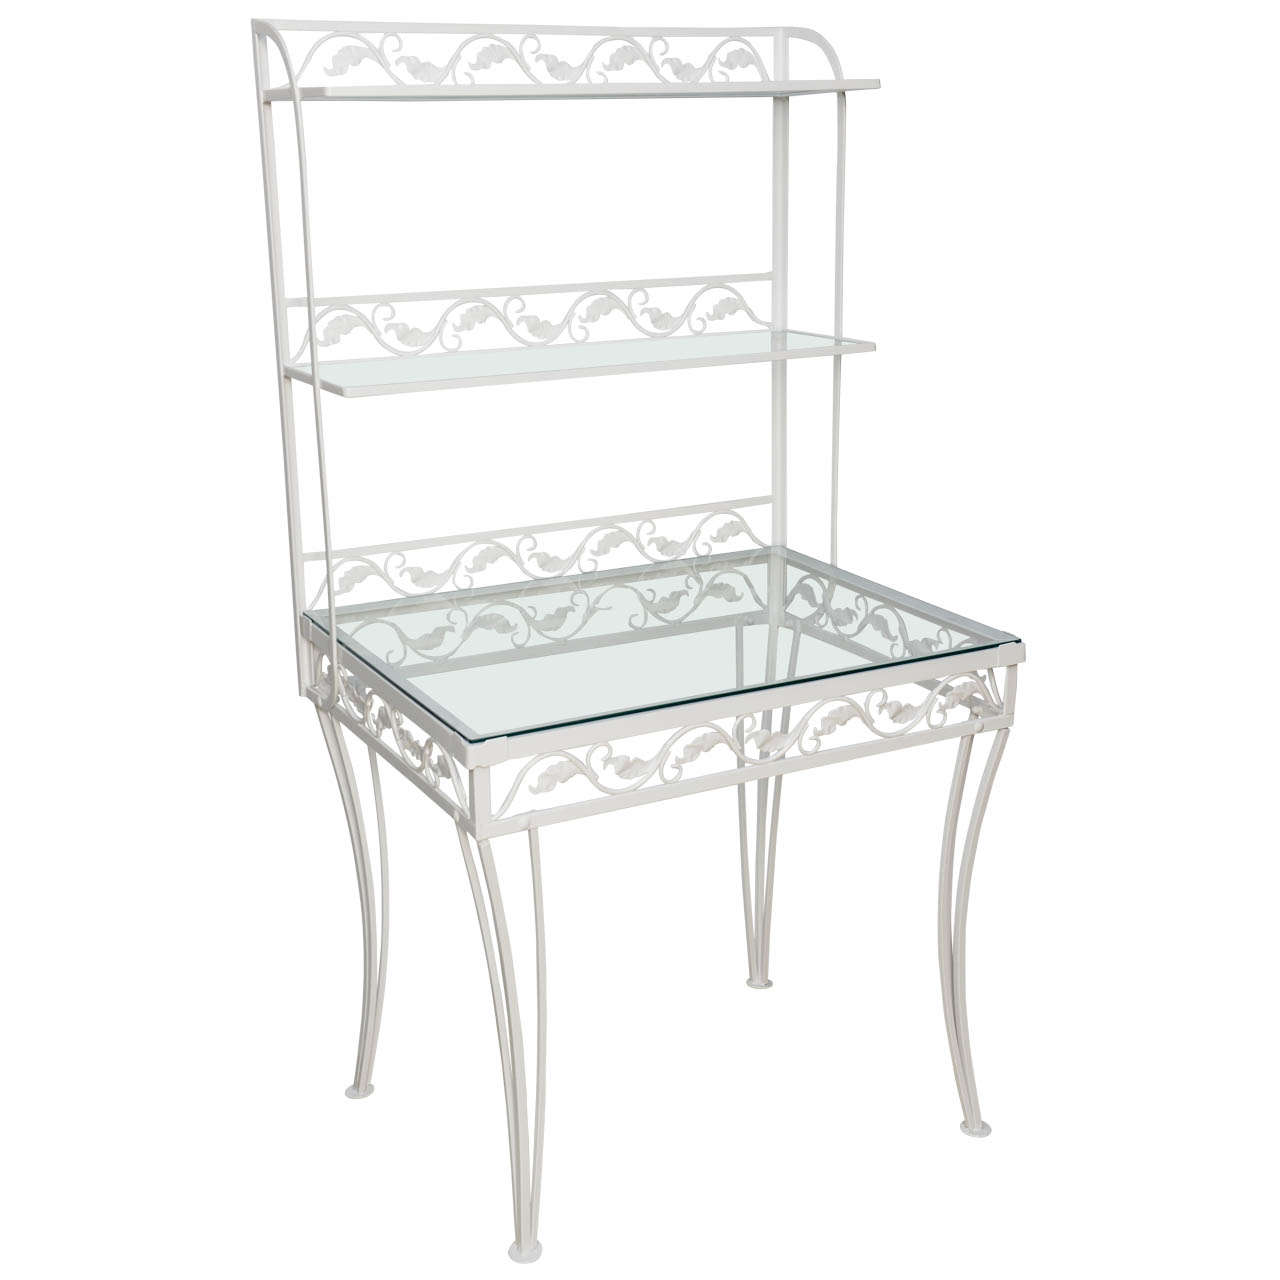 Wrought Iron Etagere or Server by Woodard